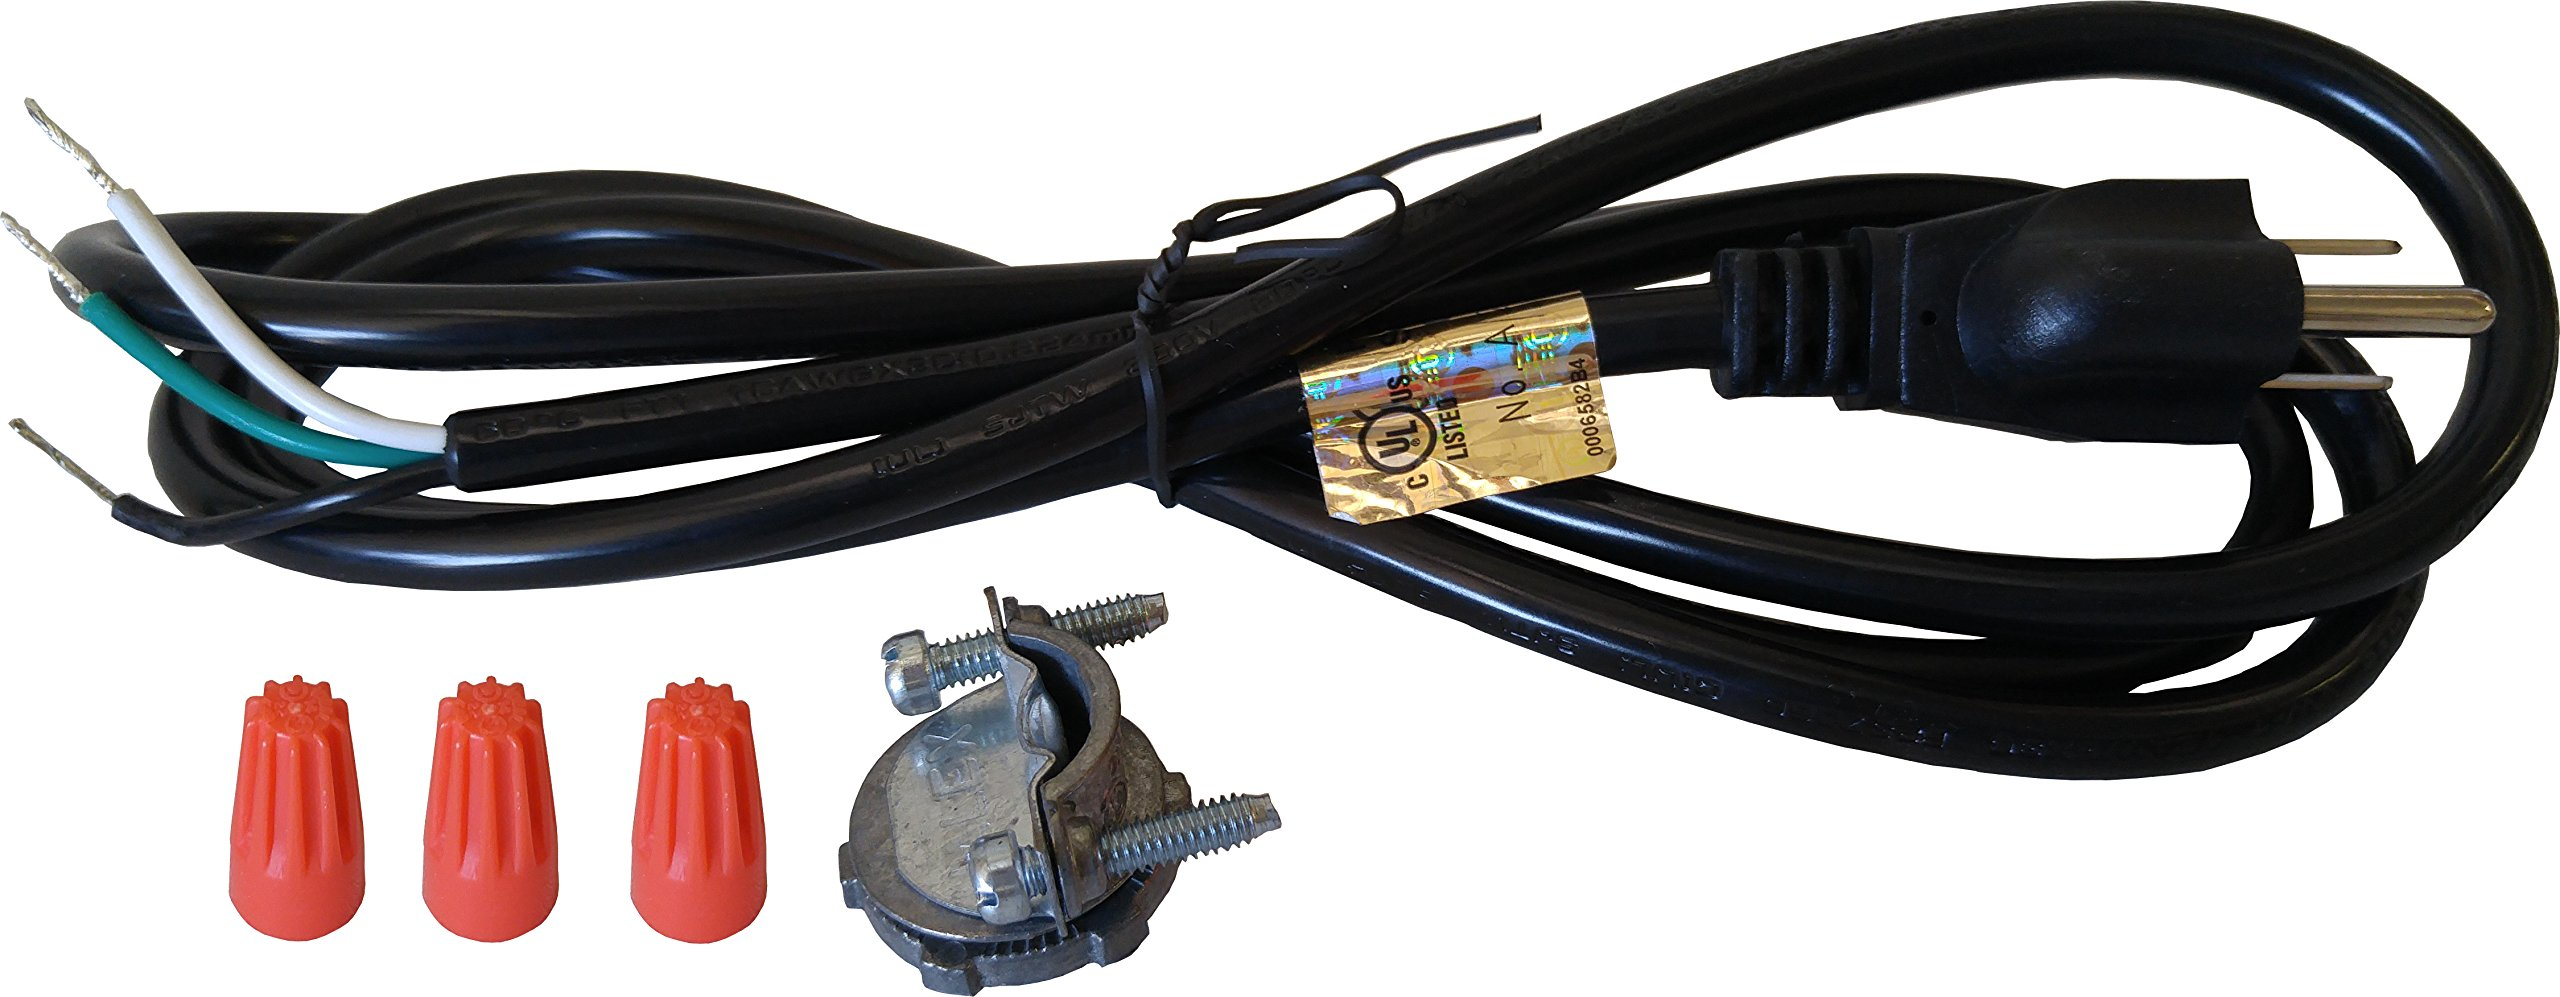 In sink Erator Disposal Power Cord Kit with 3 Prong Plug - 5 Pack